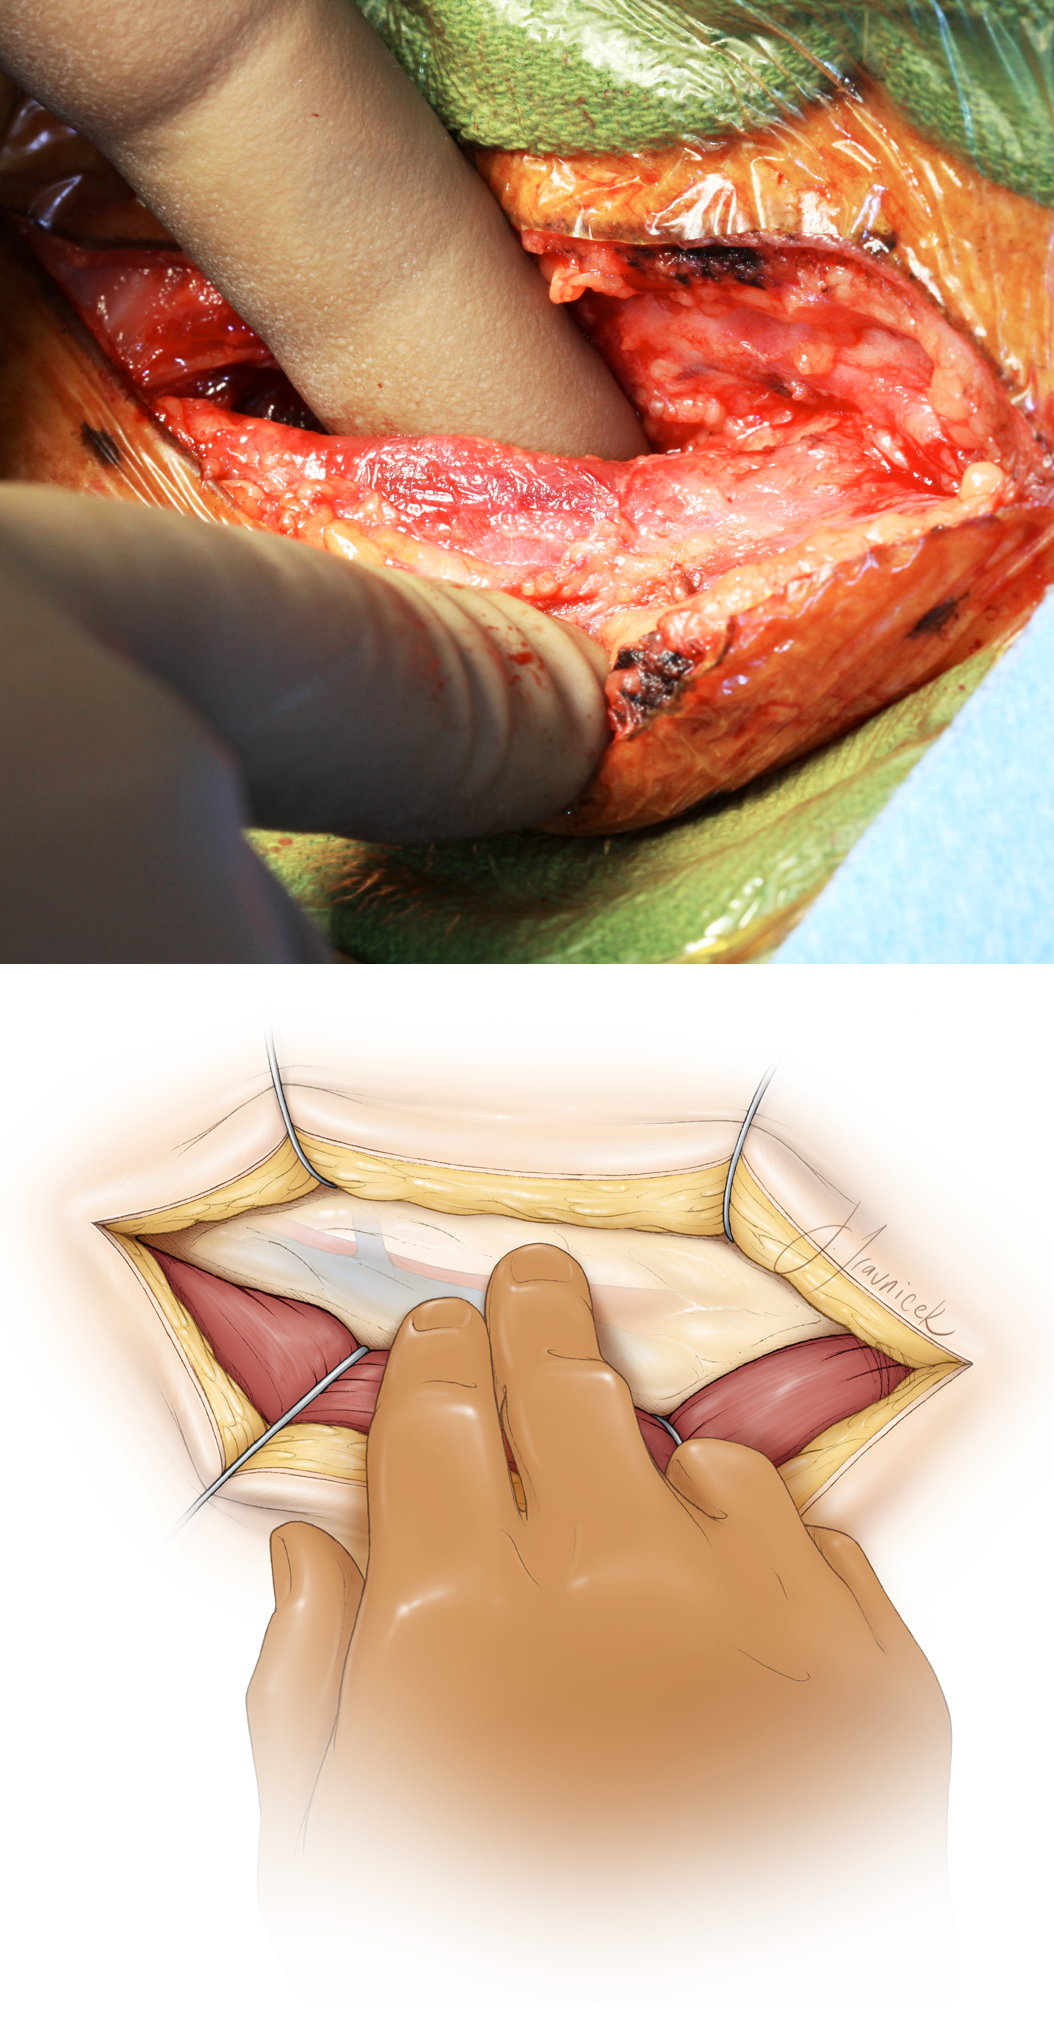 Figure 7: Upon gentle lateral reflection and retraction of the sternocleidomastoid muscle, I palpate the soft tissues along the medial aspect of its belly for the pulse and the location of the carotid artery. Note the direction of the palpation just along the medial surface of the muscle (top image). Division of the soft tissue planes between the sternocleidomastoid muscle and the midline swallowing muscles identifies the jugular vein. Fish-hook retractors may be employed to expand this plane, but the recurrent laryngeal nerve or the esophagus should not be injured by the hooks or retractor blades (bottom image).